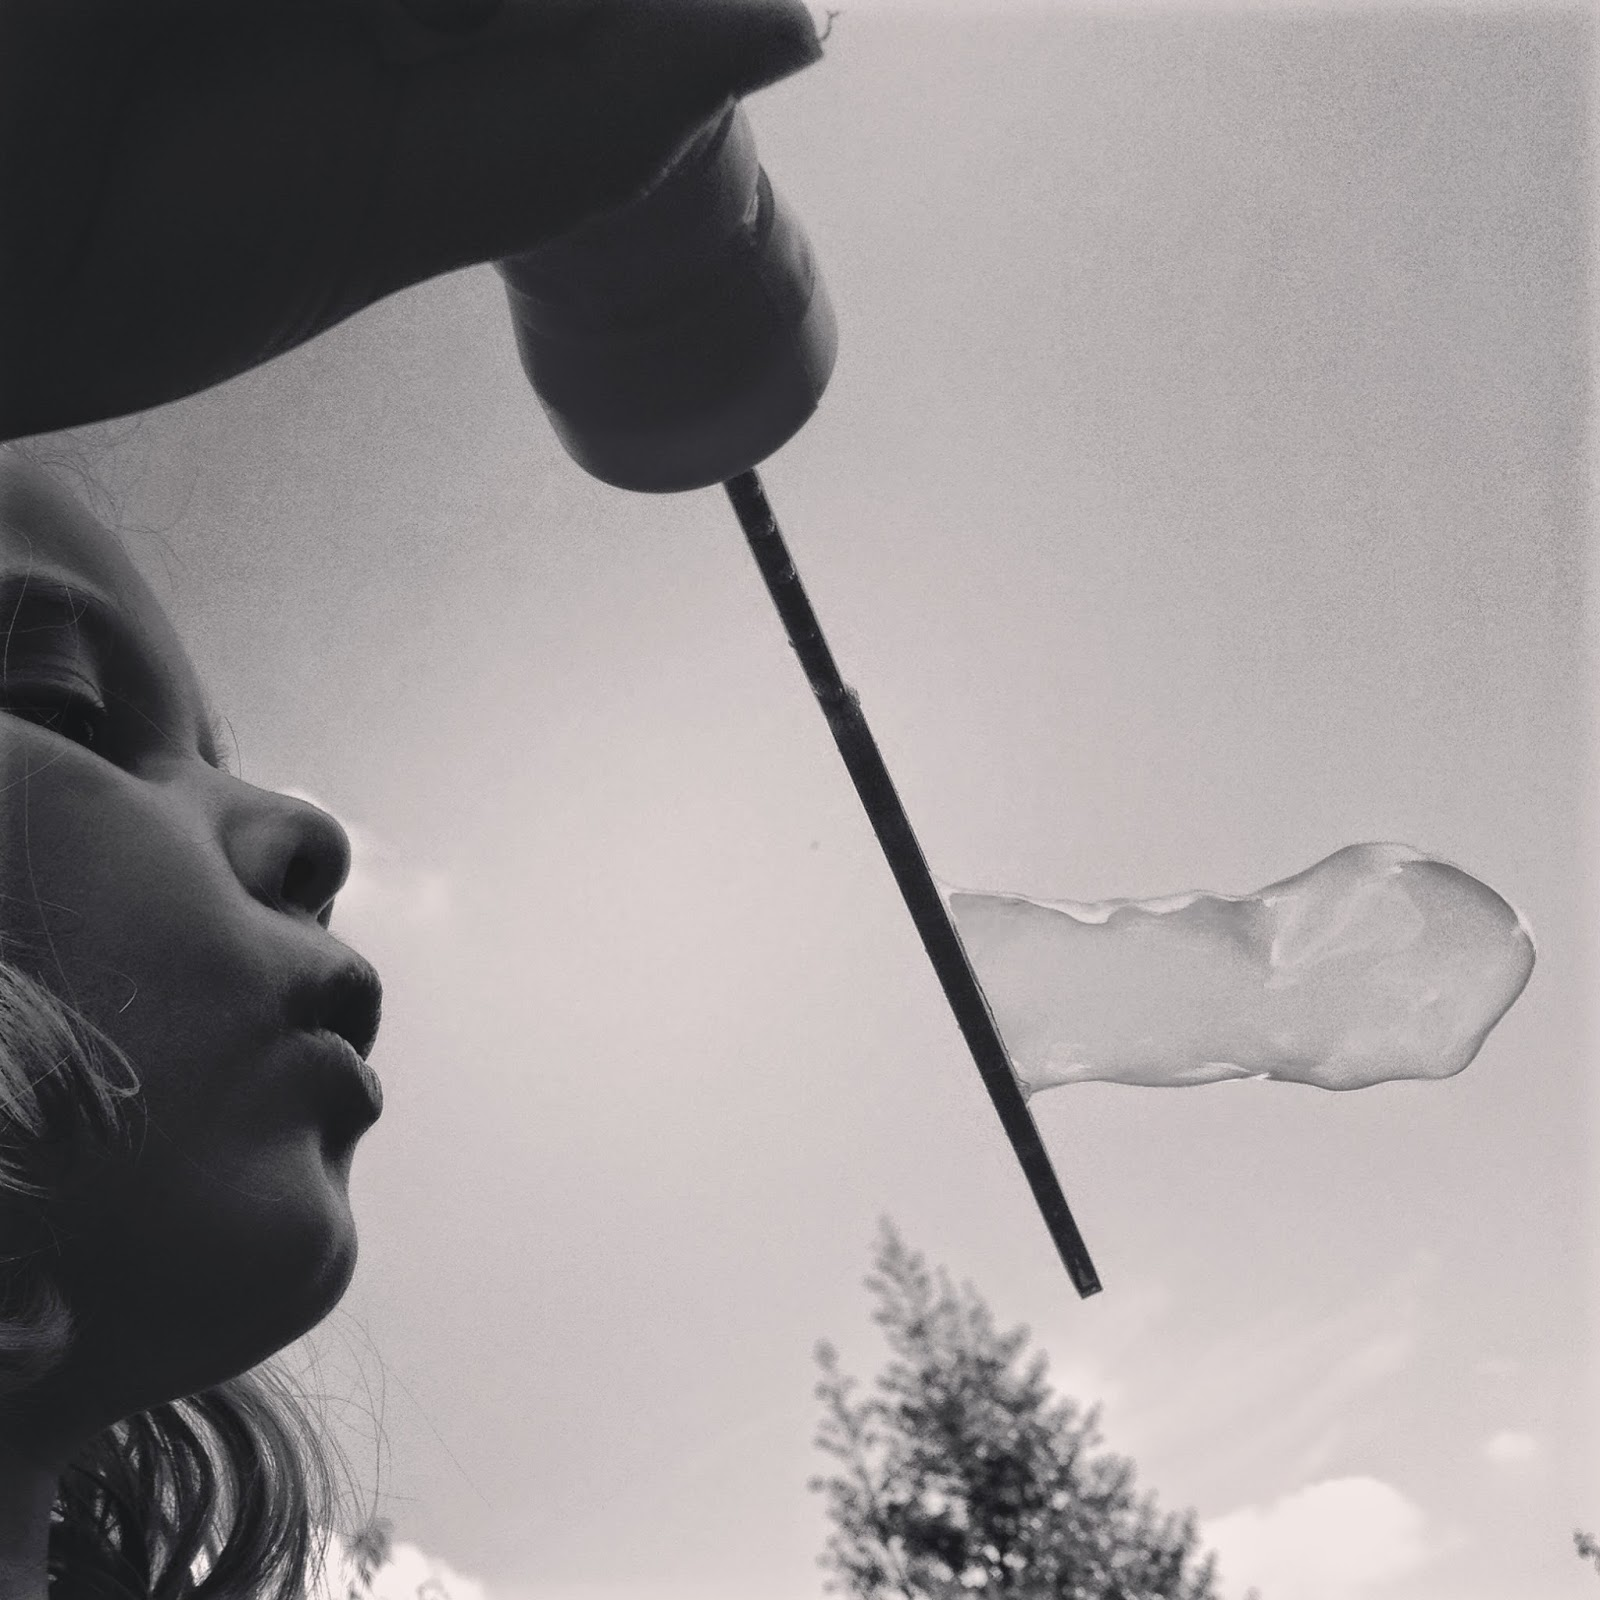 Bubble blowing - Fivegoblogging